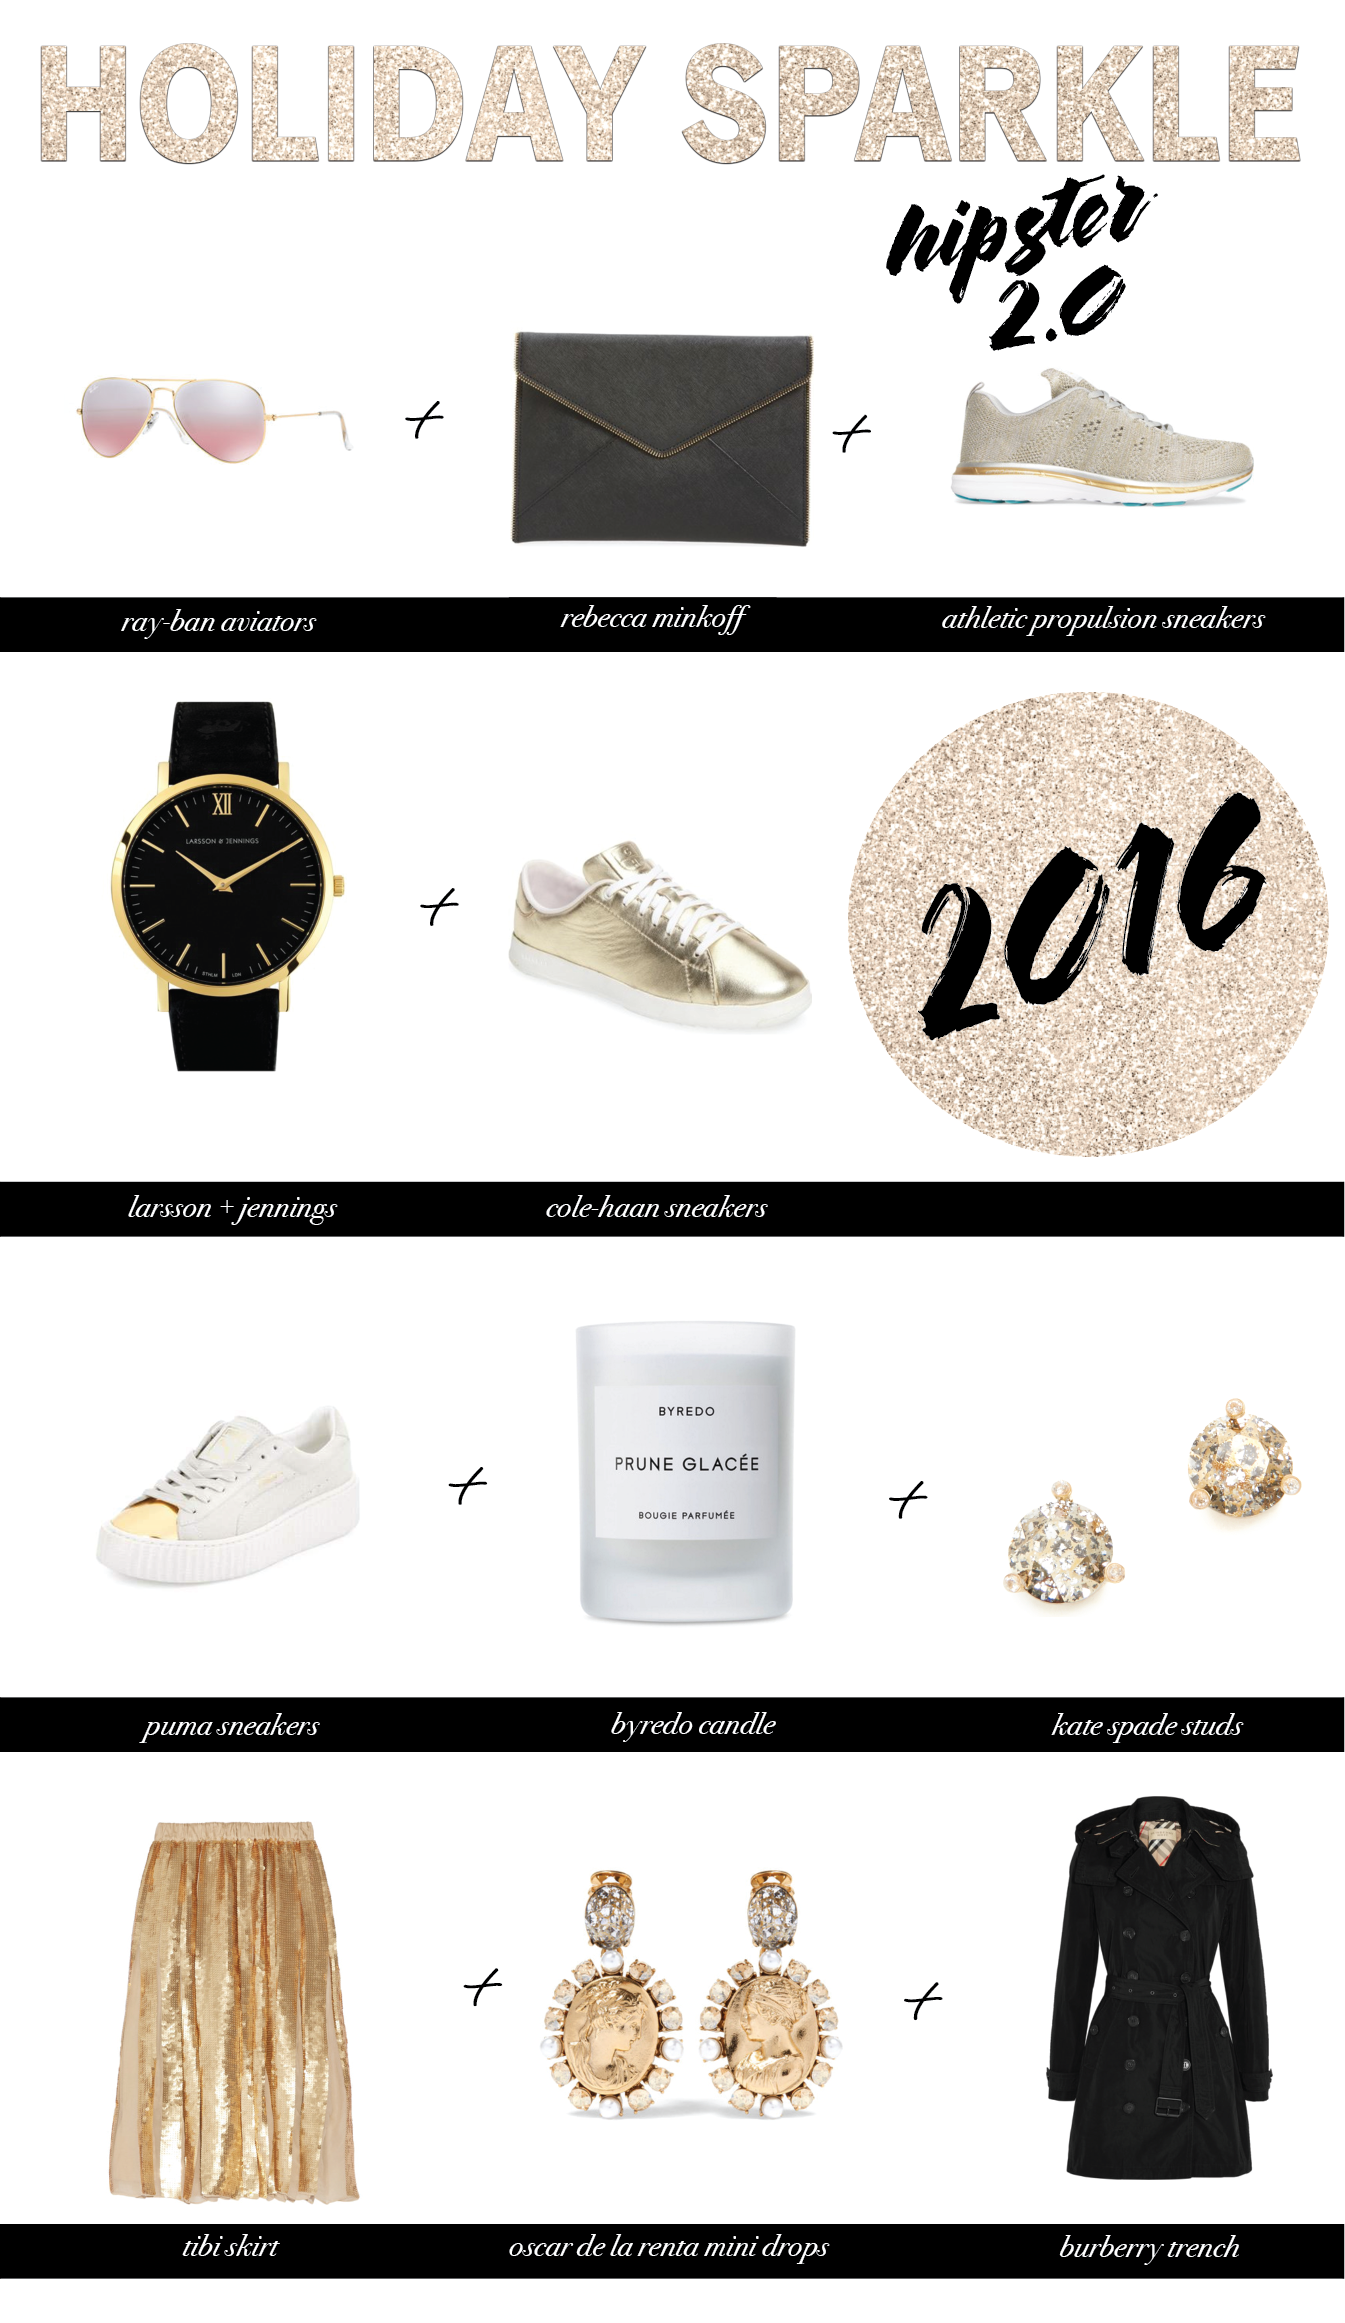 hipster-holiday-gift-guide-2016